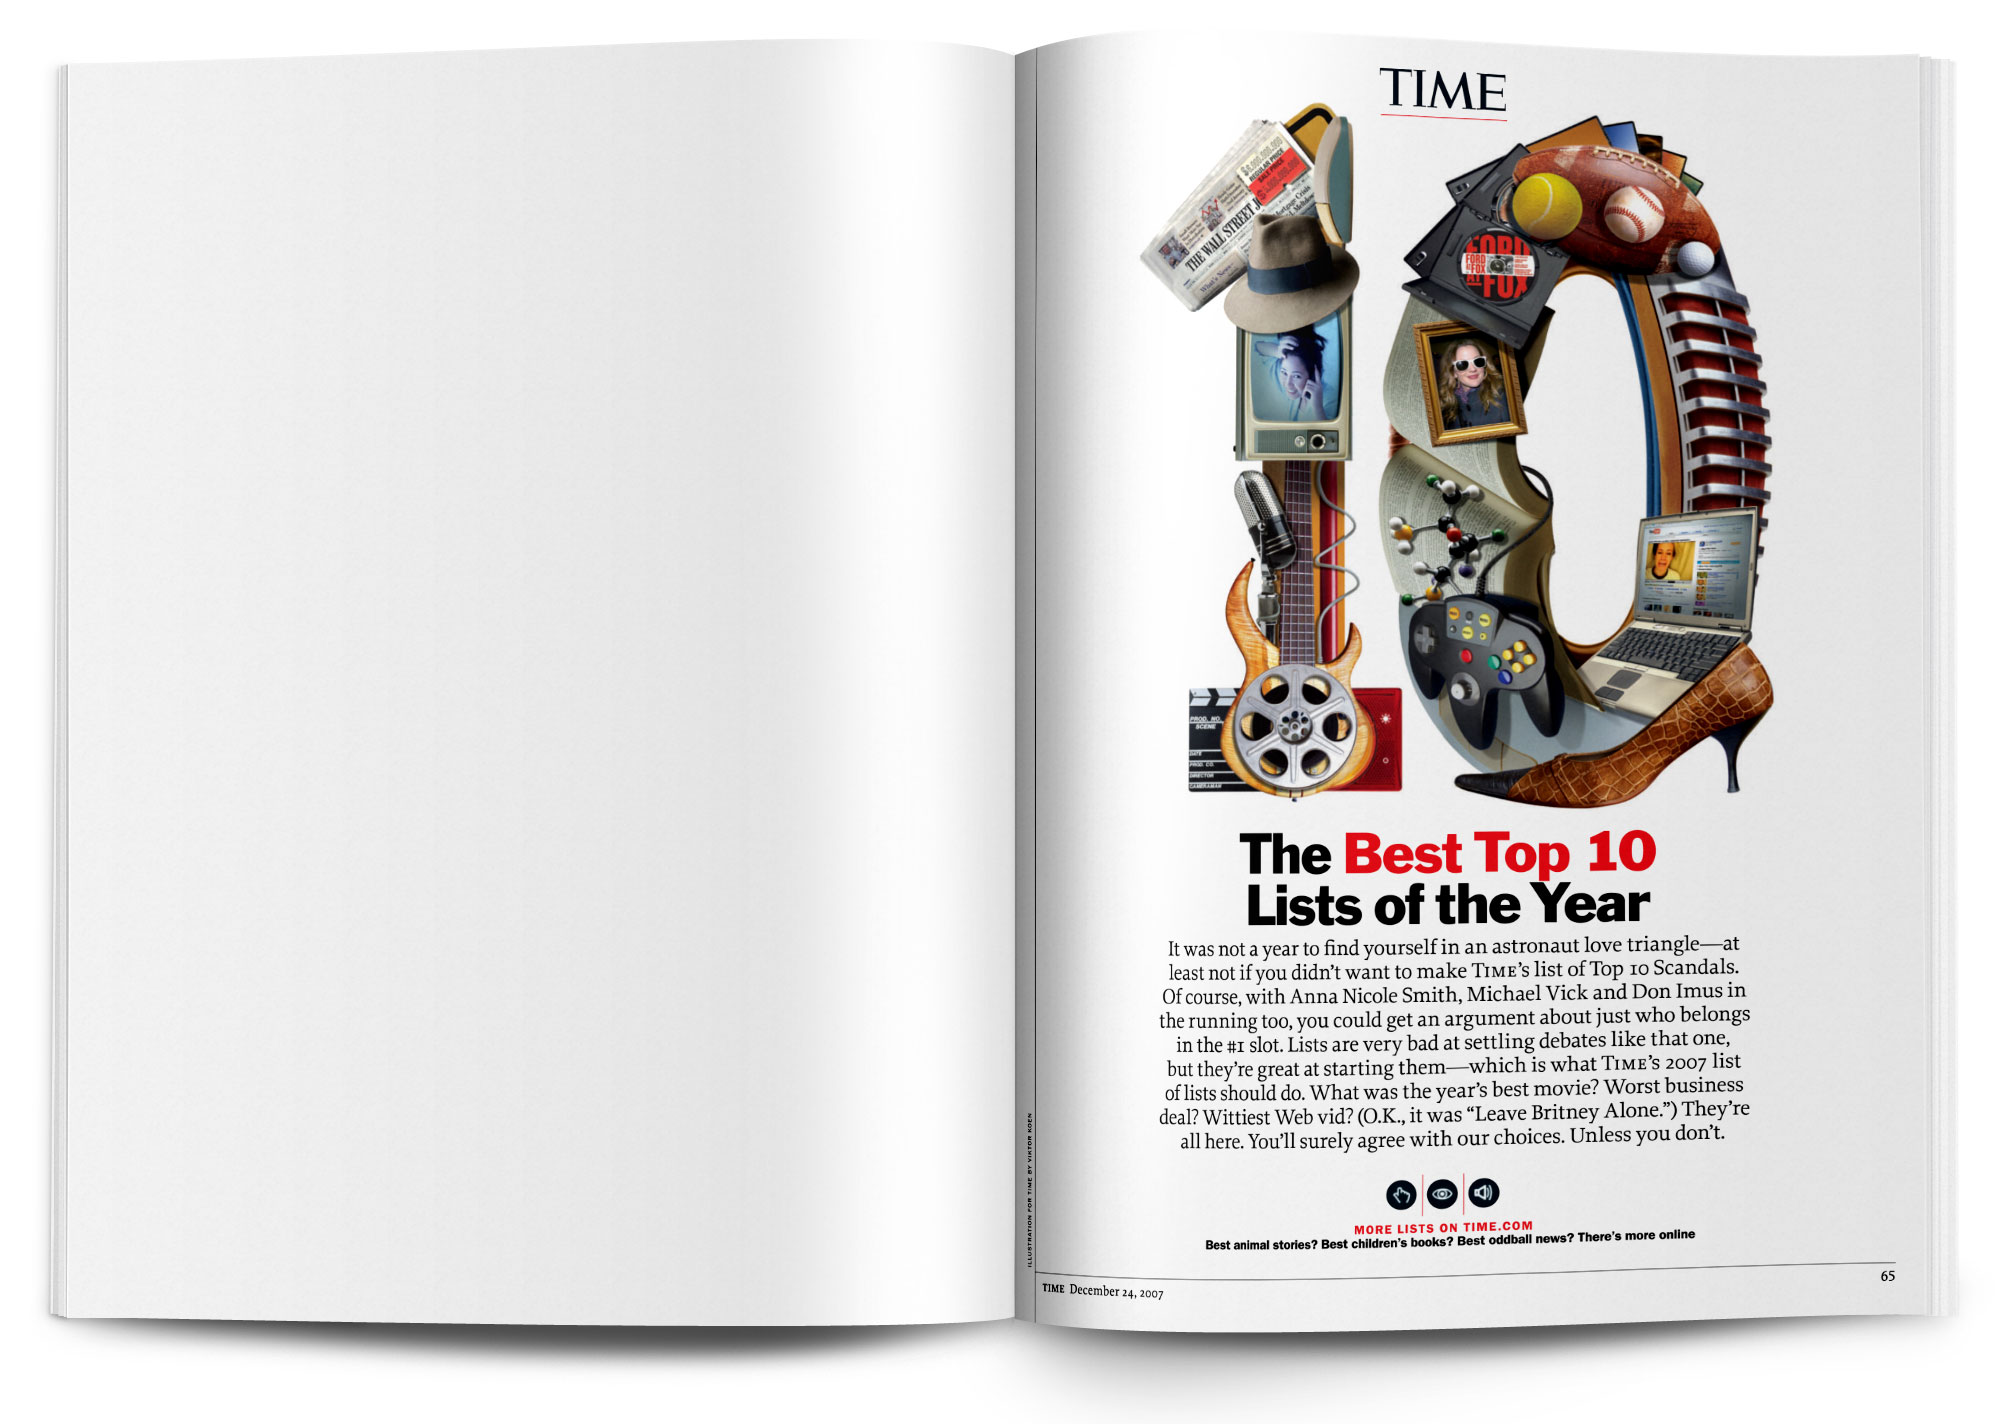 Art directed and designed the Best Top 10 Lists of the Year